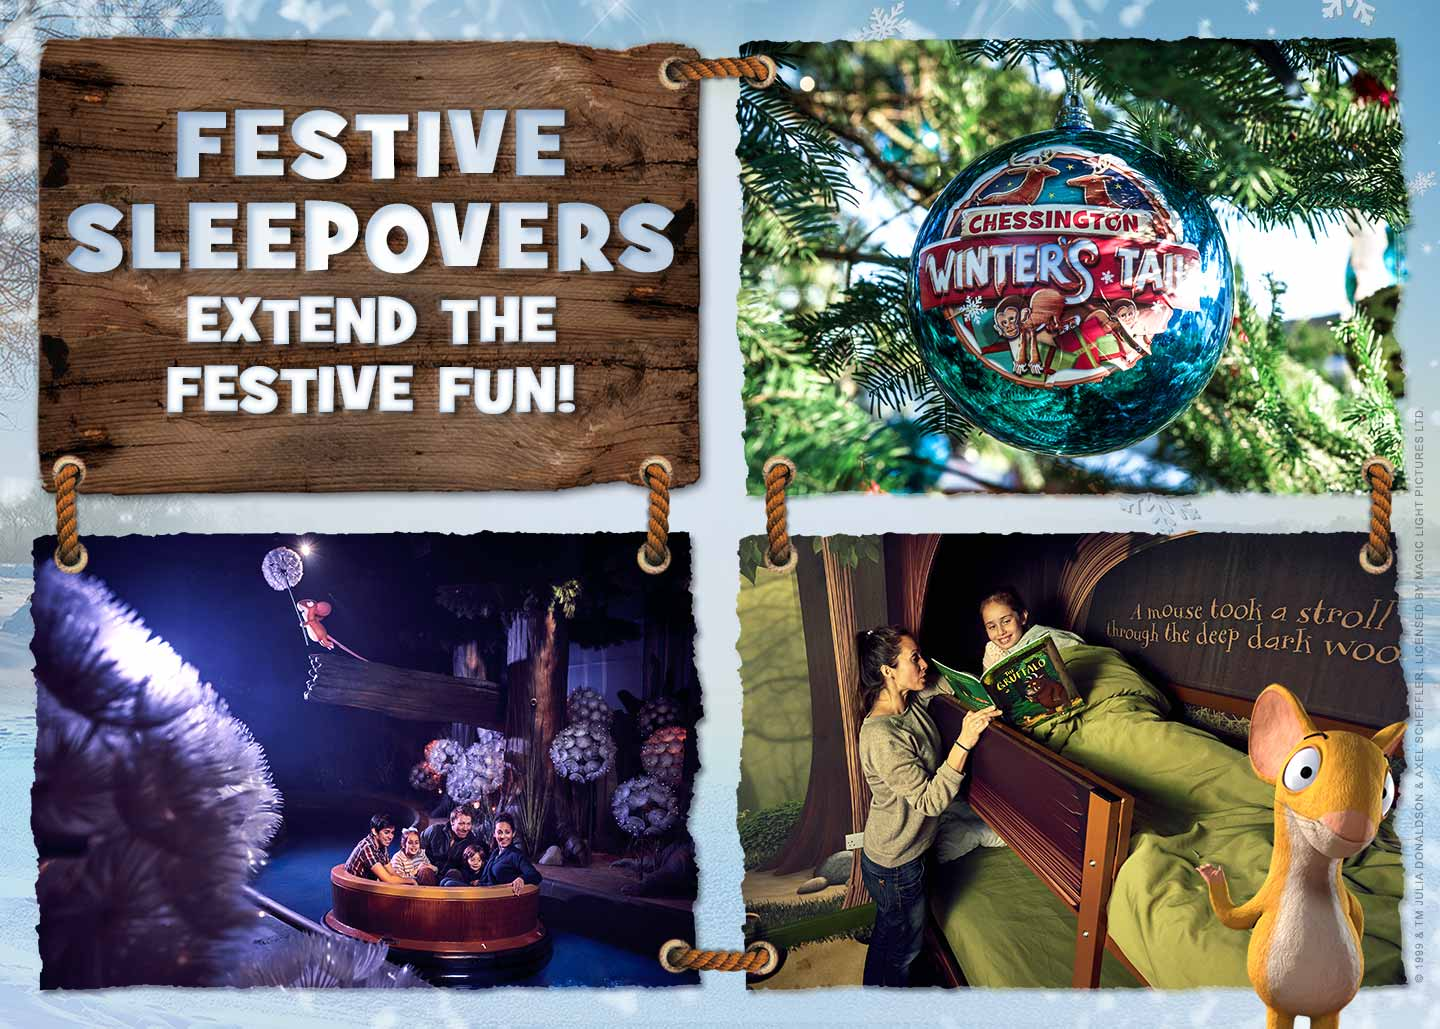 Festive Sleepovers 2020 at Chessington World of Adventures Resort